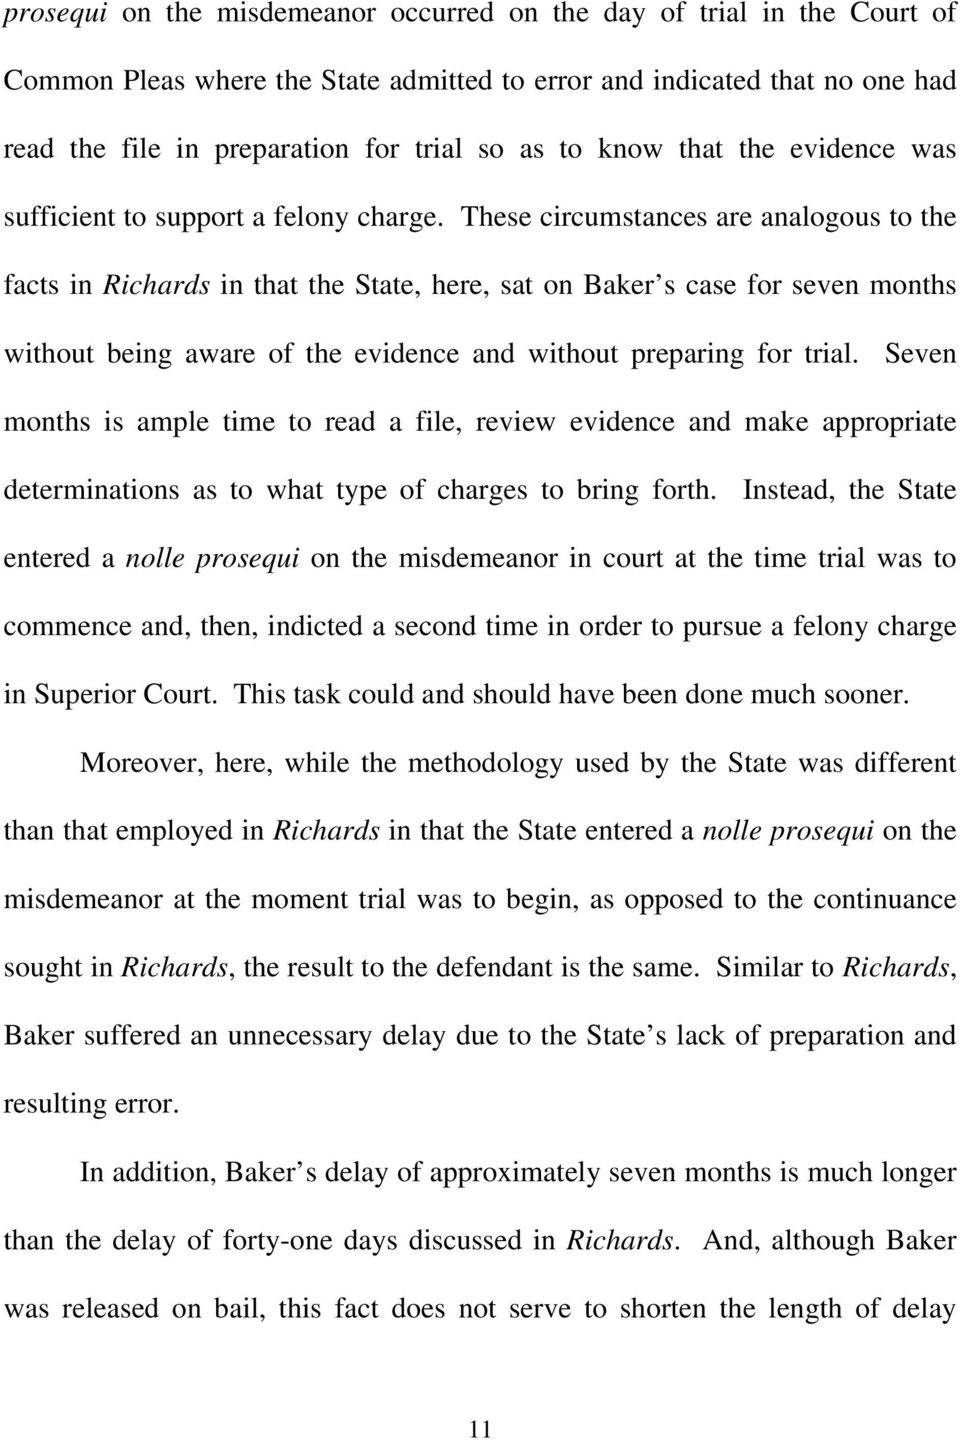 These circumstances are analogous to the facts in Richards in that the State, here, sat on Baker s case for seven months without being aware of the evidence and without preparing for trial.